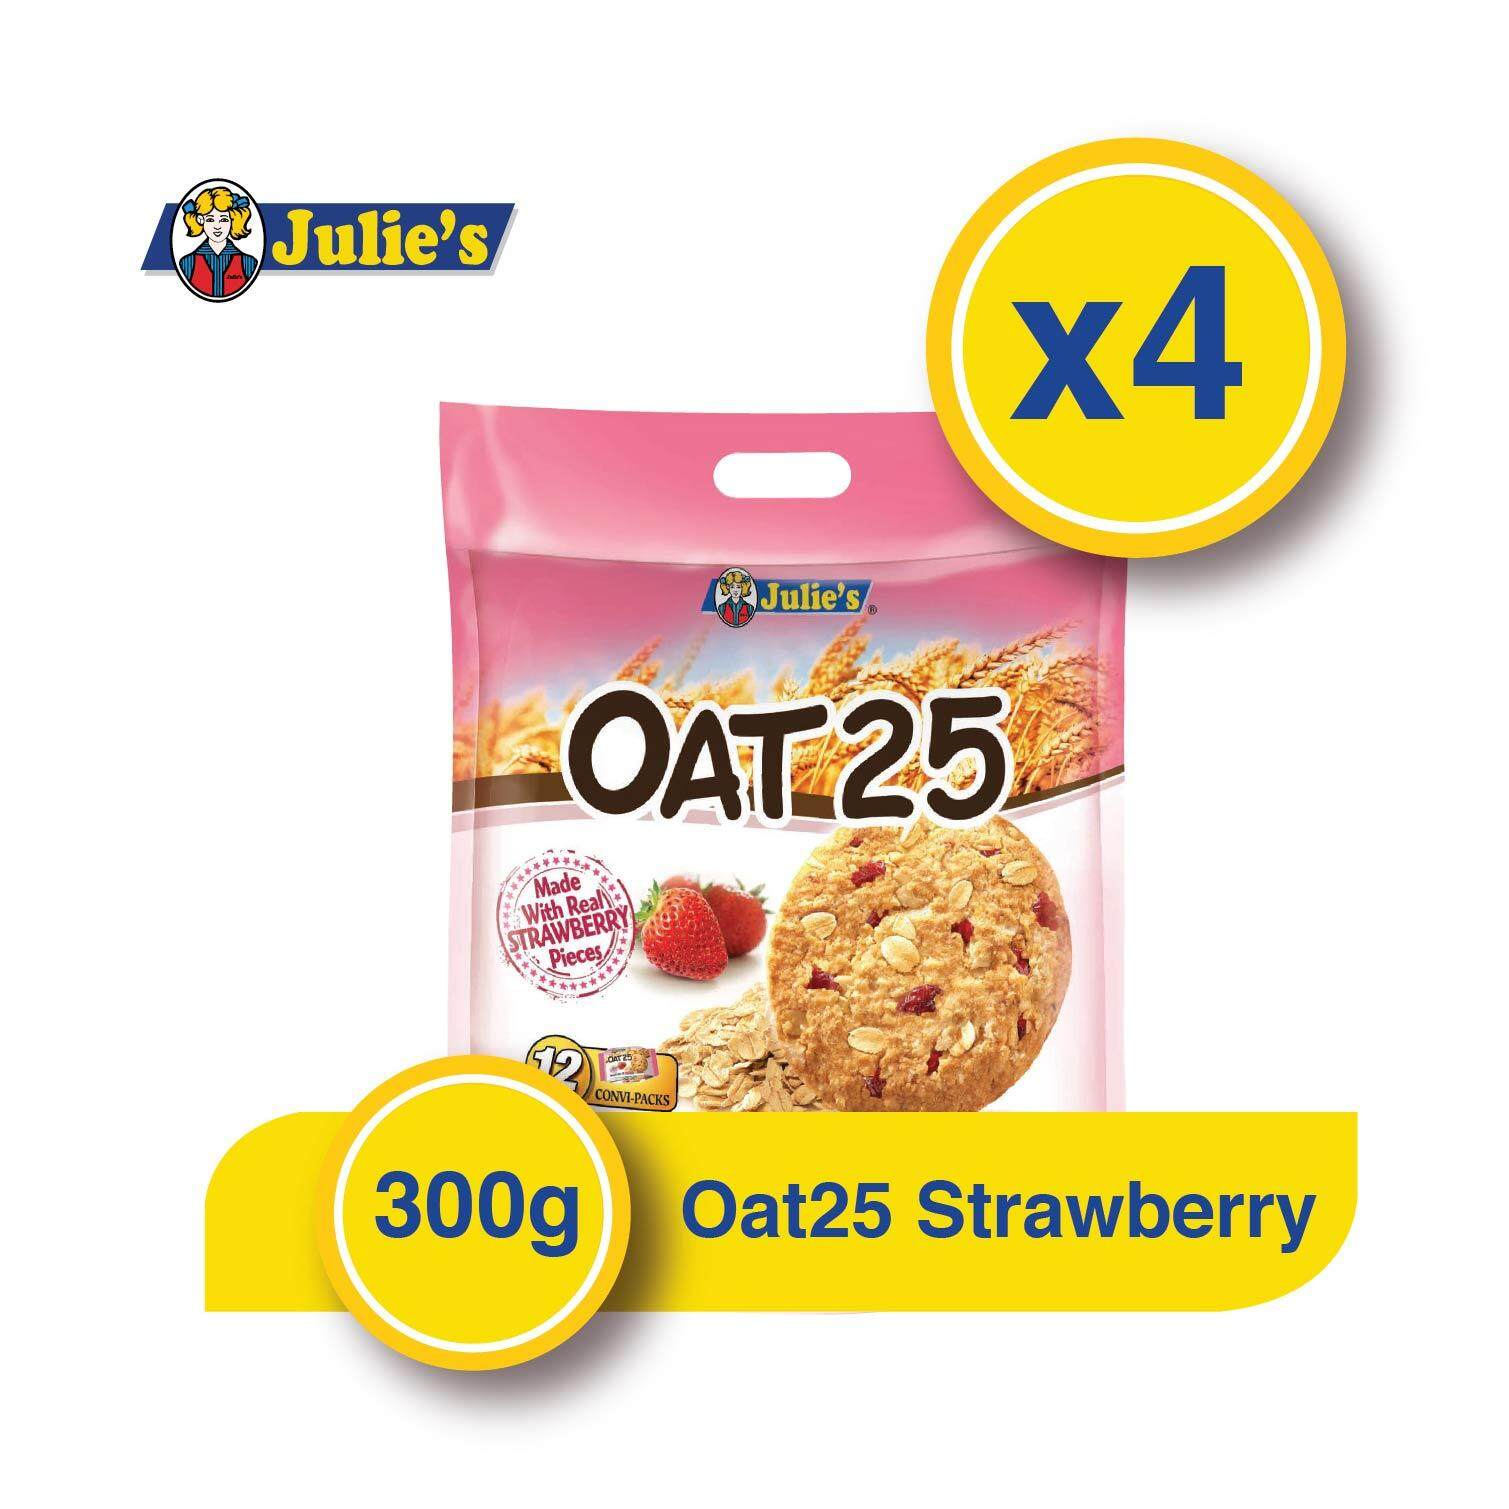 Julie's Oat25 Strawberry Biscuit x 4 packs